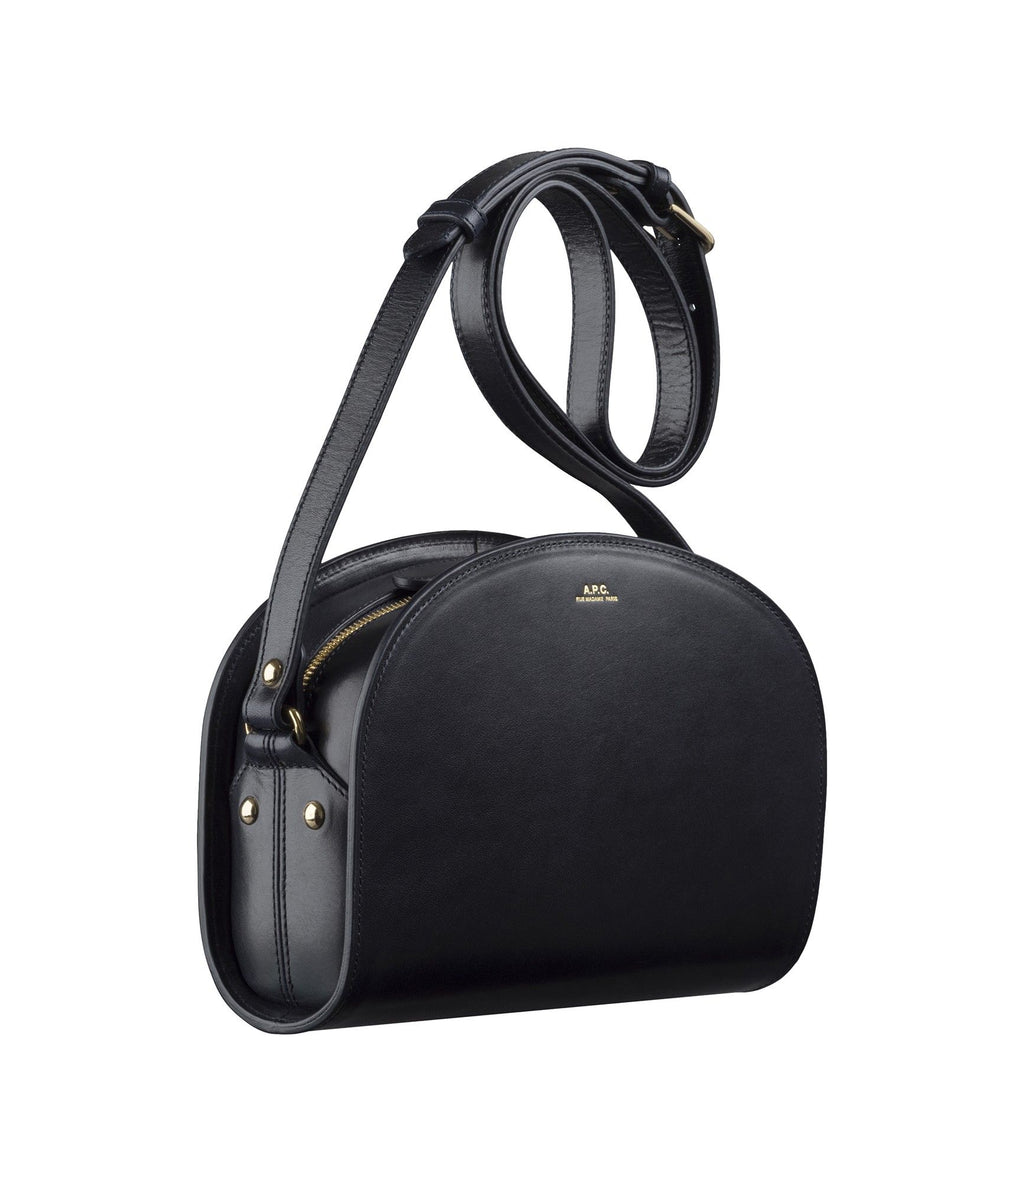 APC Demi-lune bag nut black